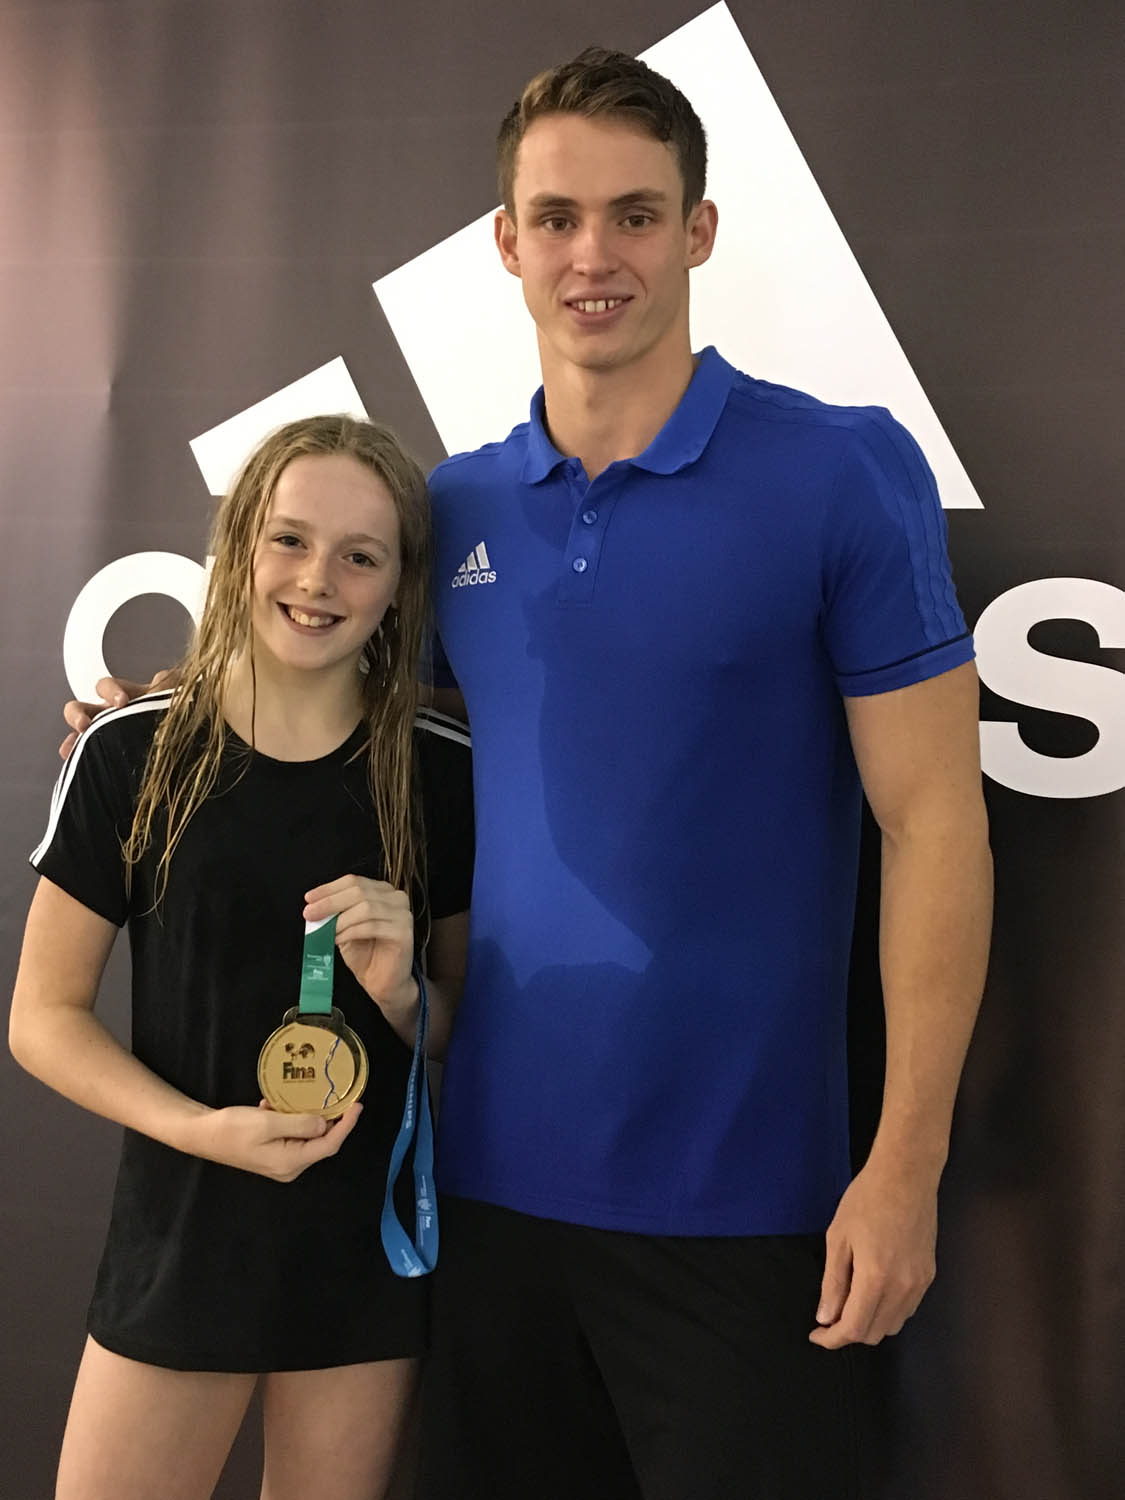 Photo: Izzy with Ben Proud (current commonwealth and world champion in the 50m freestyle event)